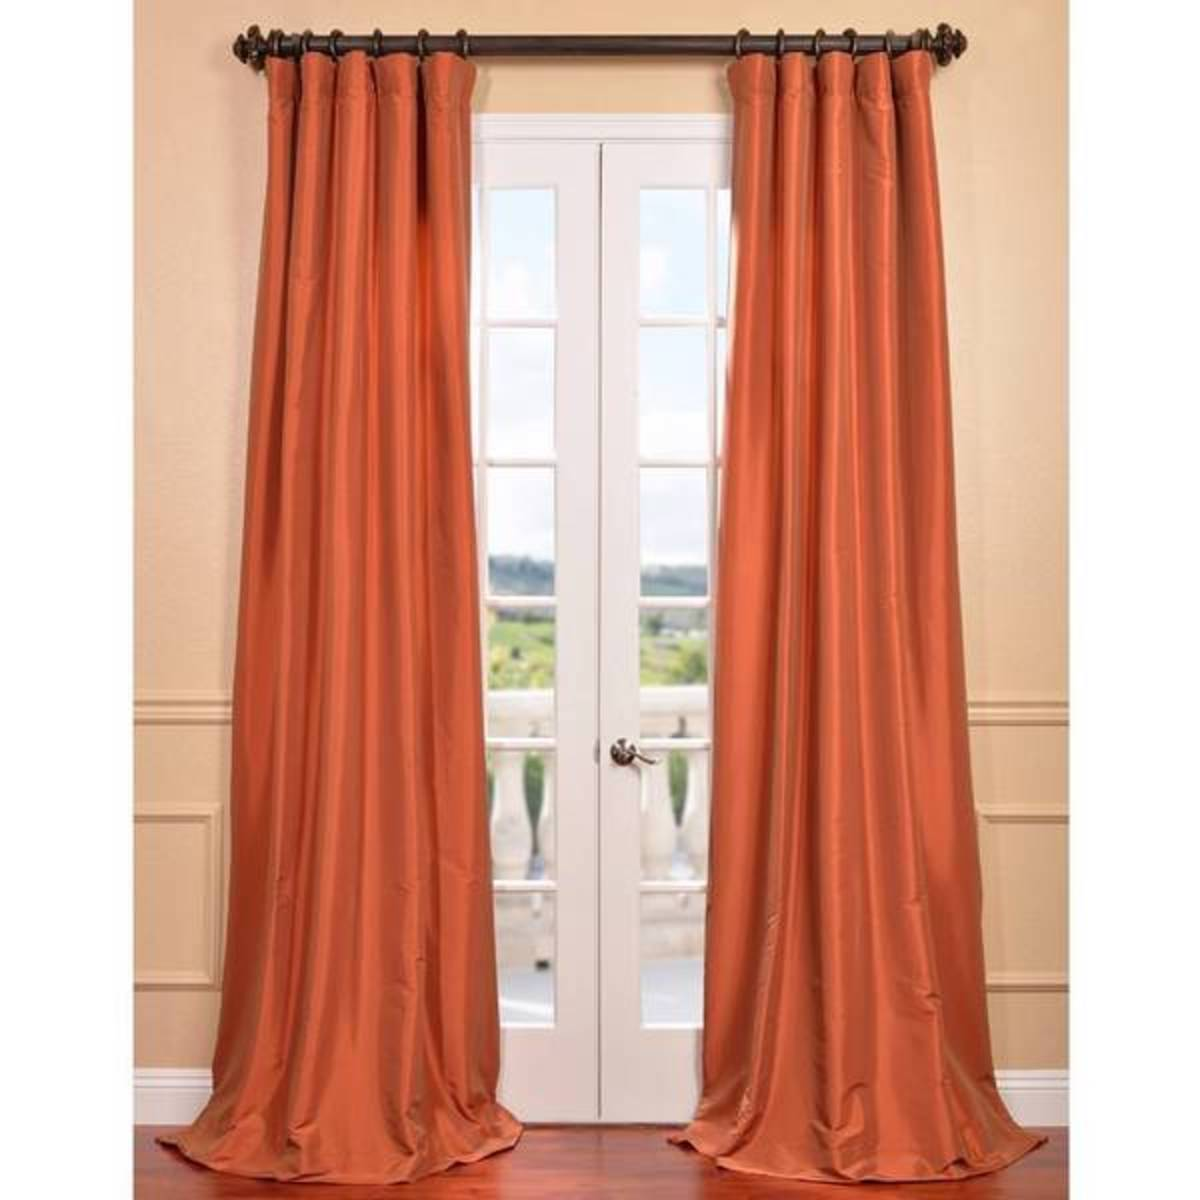 These dupioni curtains are more wrinkle resistant than taffeta.